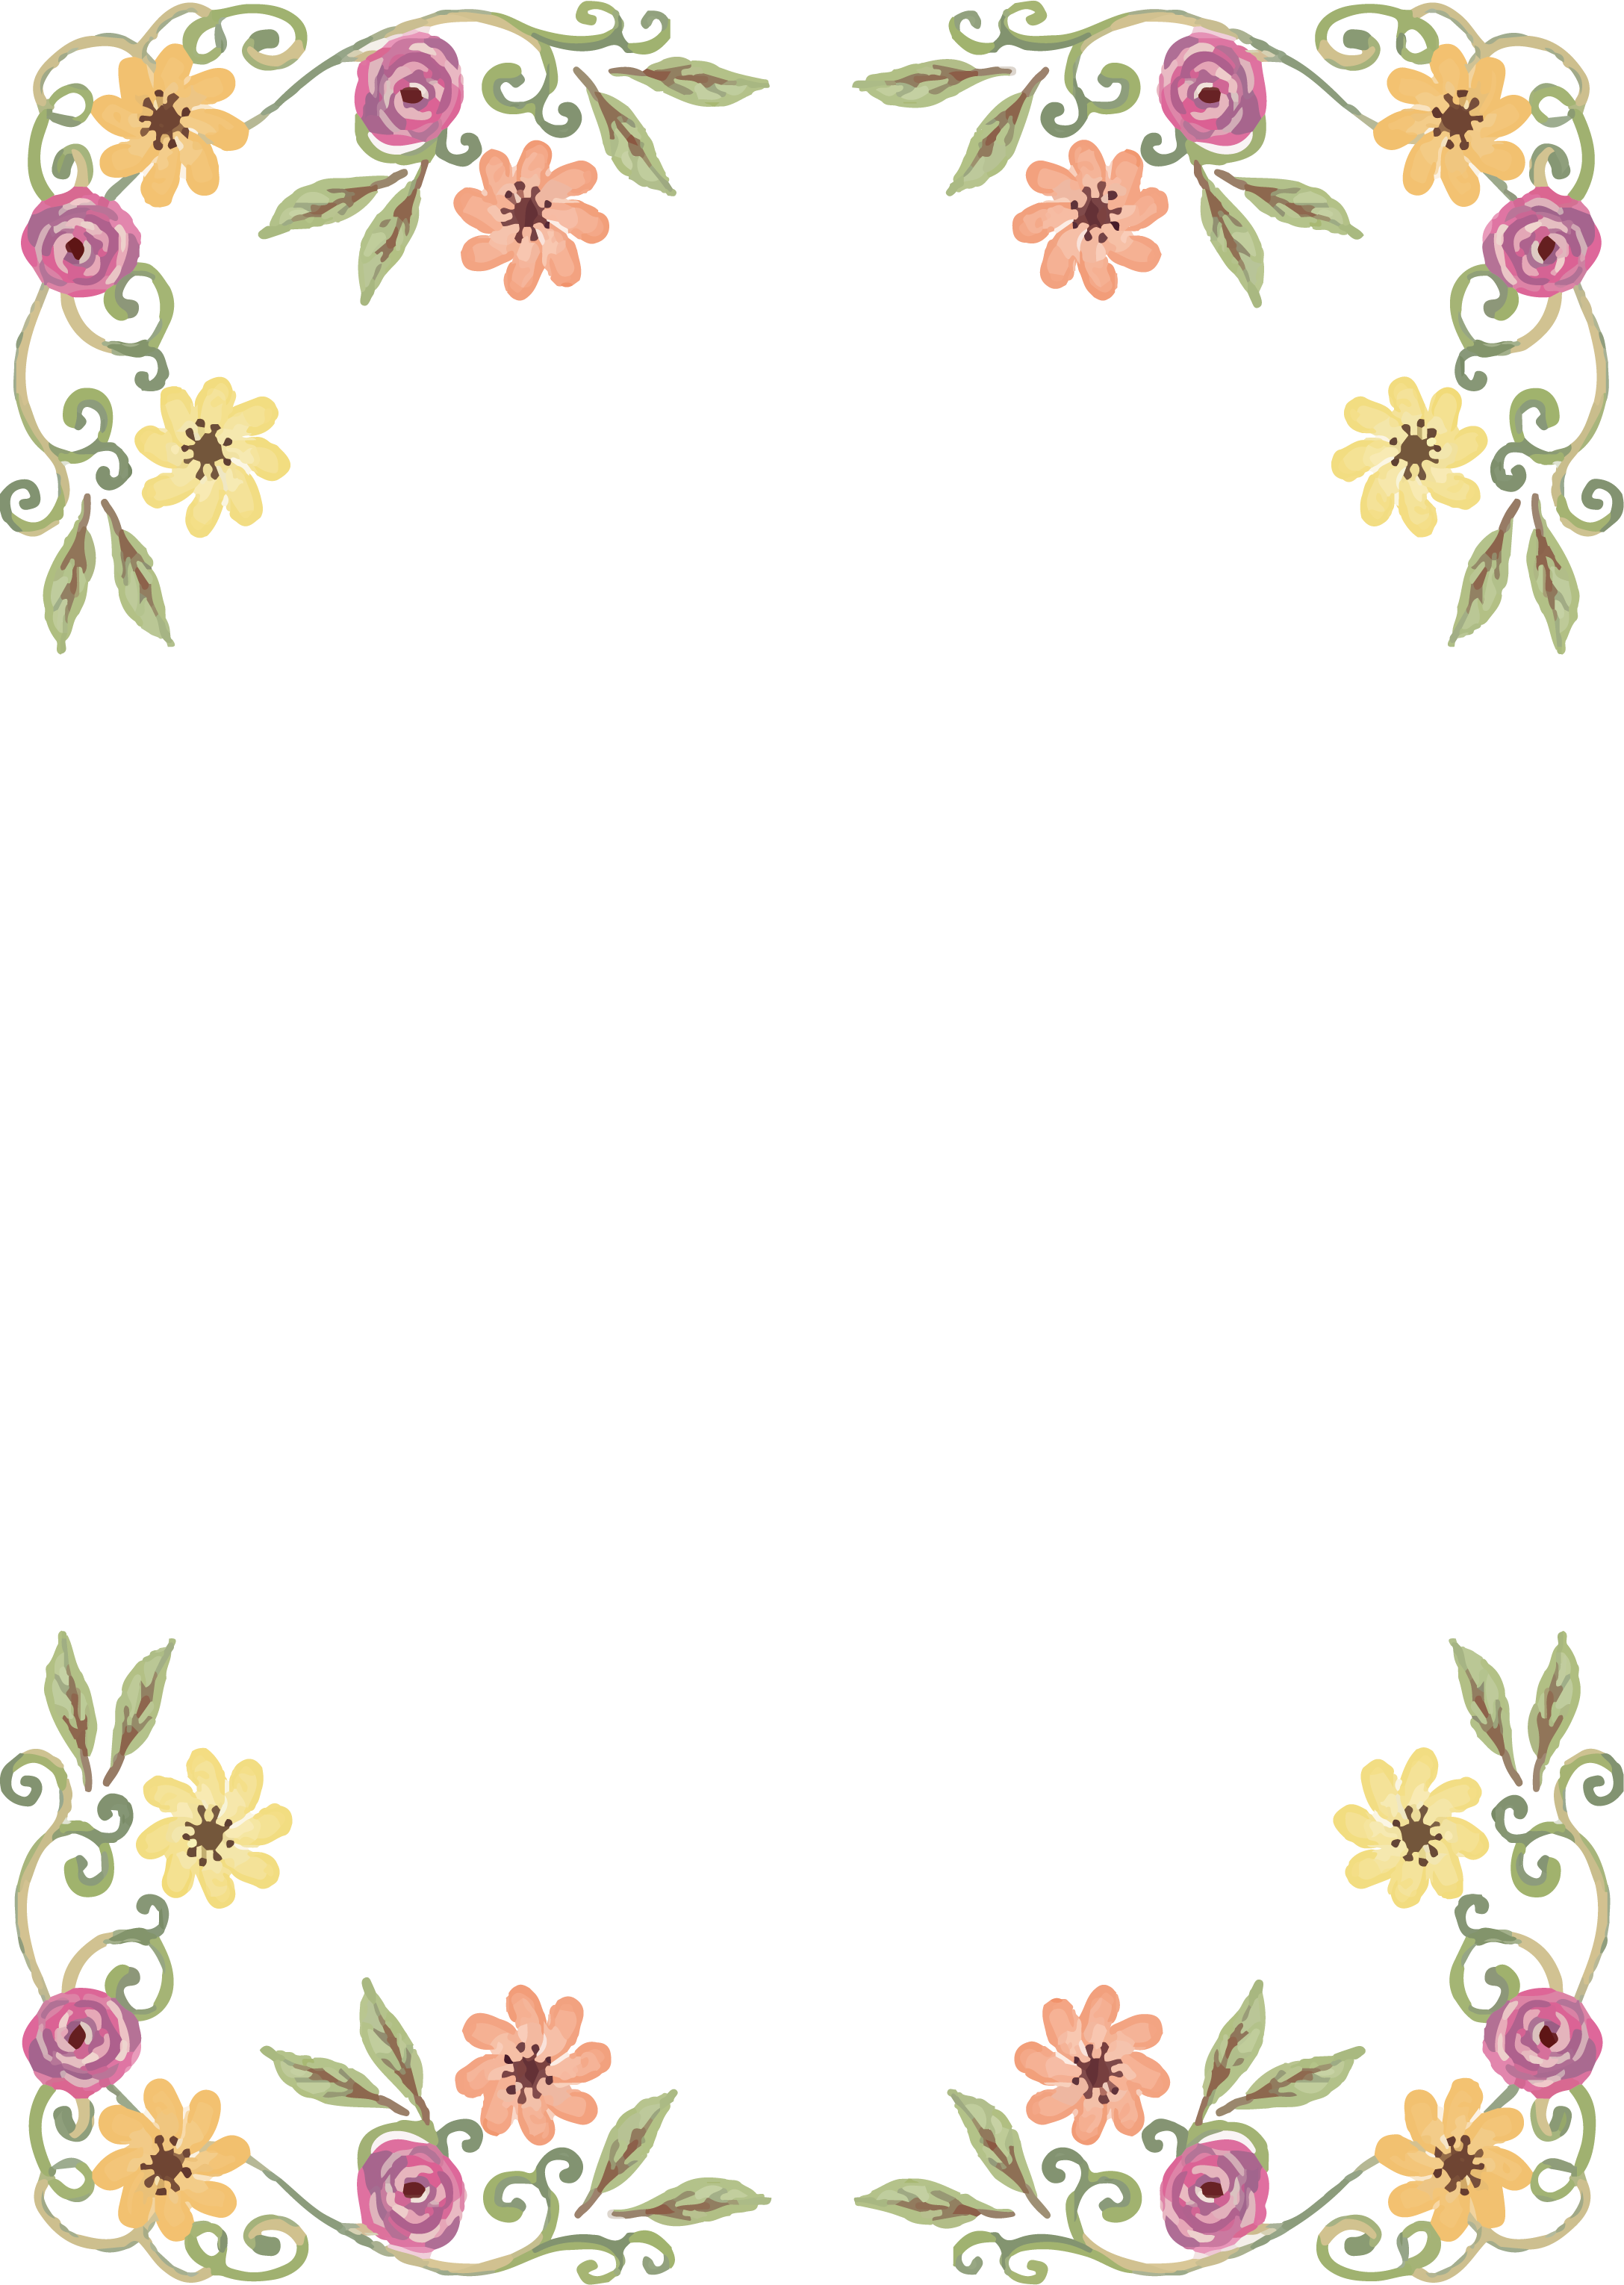 Download Png Black And White Library Design Border Of Wild ...